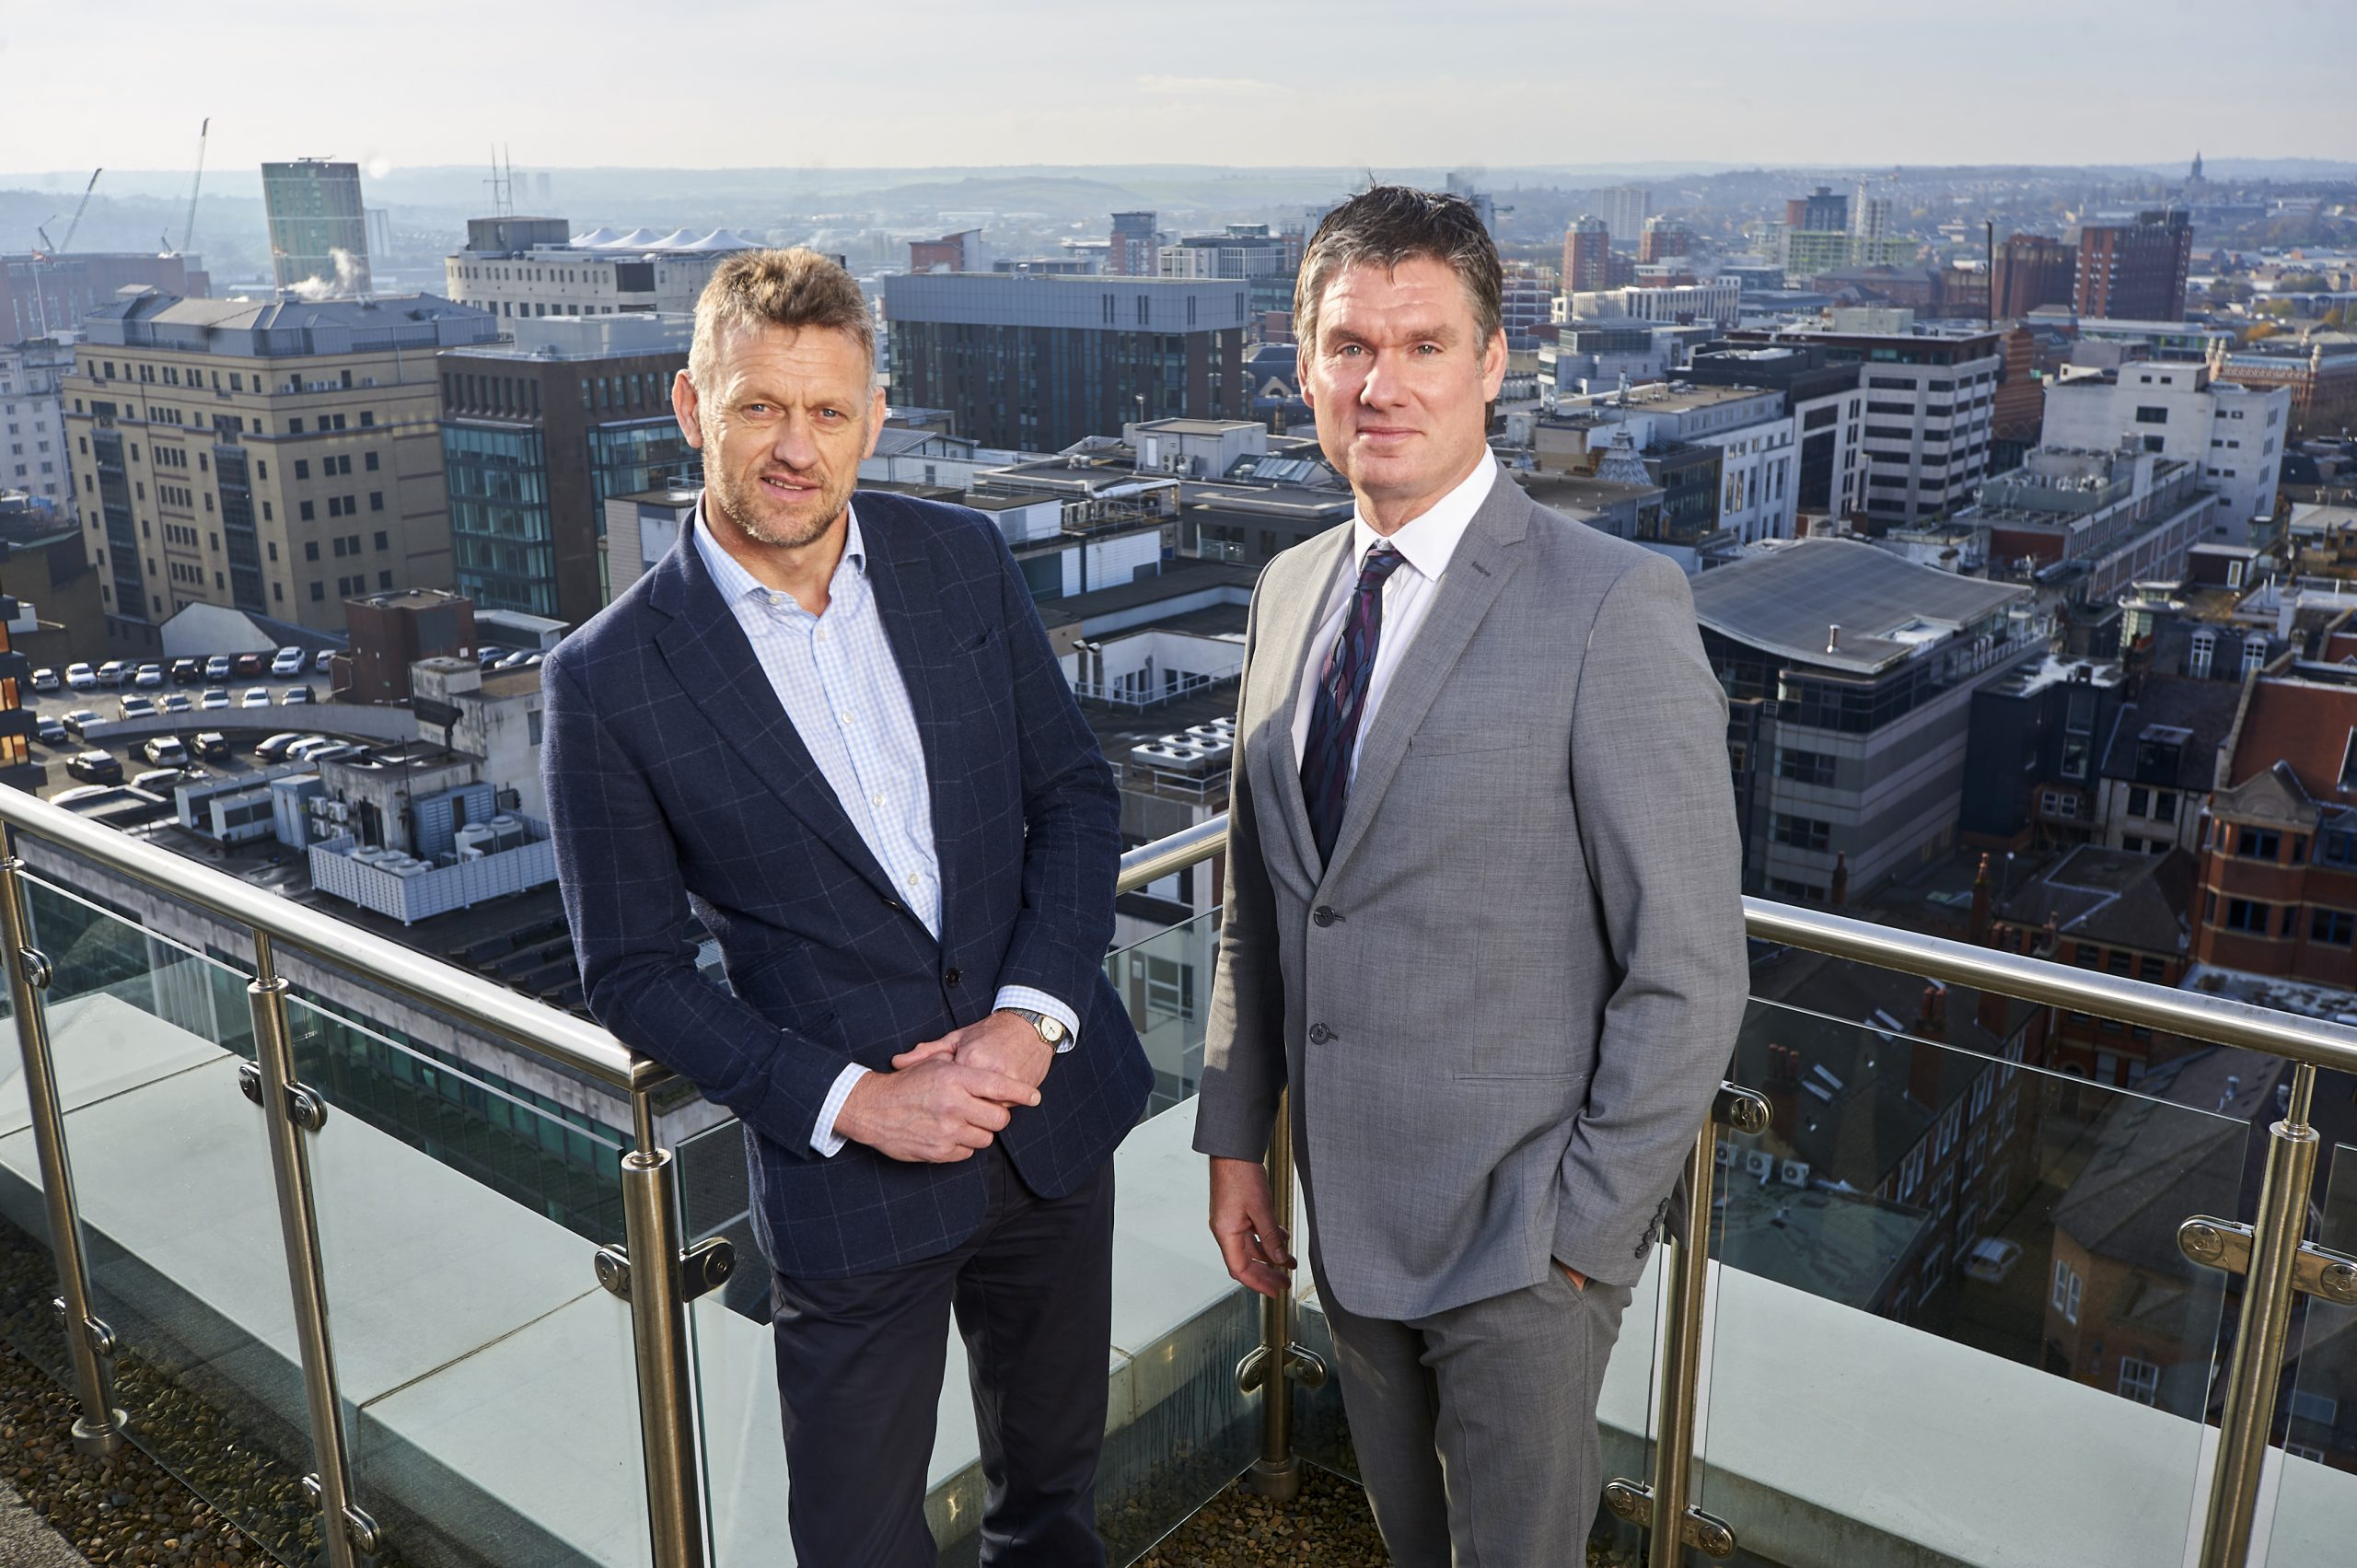 NEW DEVELOPMENT COMPANY LAUNCHES TO REVIVE NORTHERN CENTRES